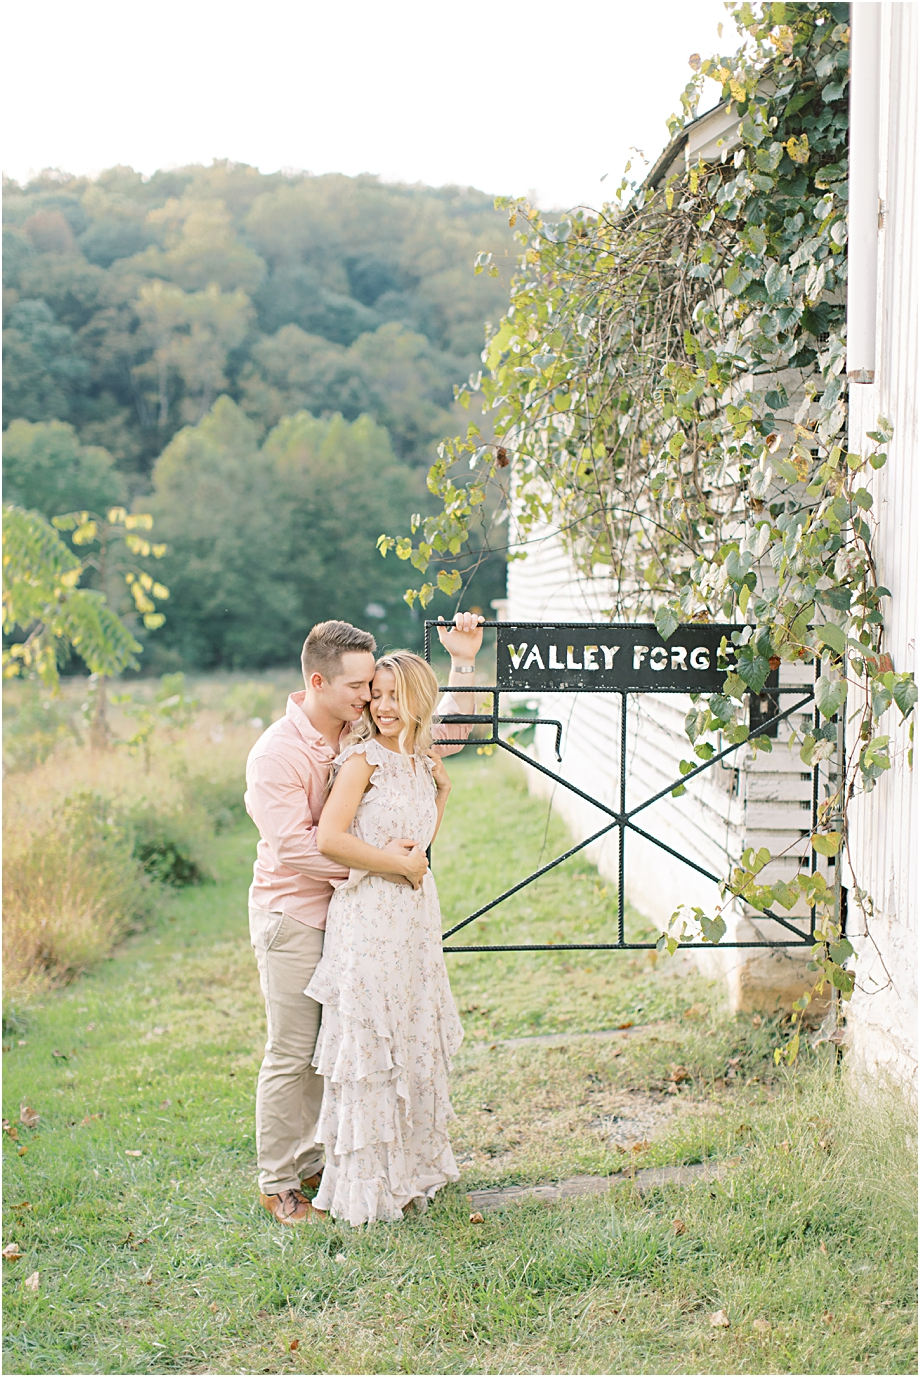 Couple at Golden Hour | Valley Forge Photographer Sarah Canning